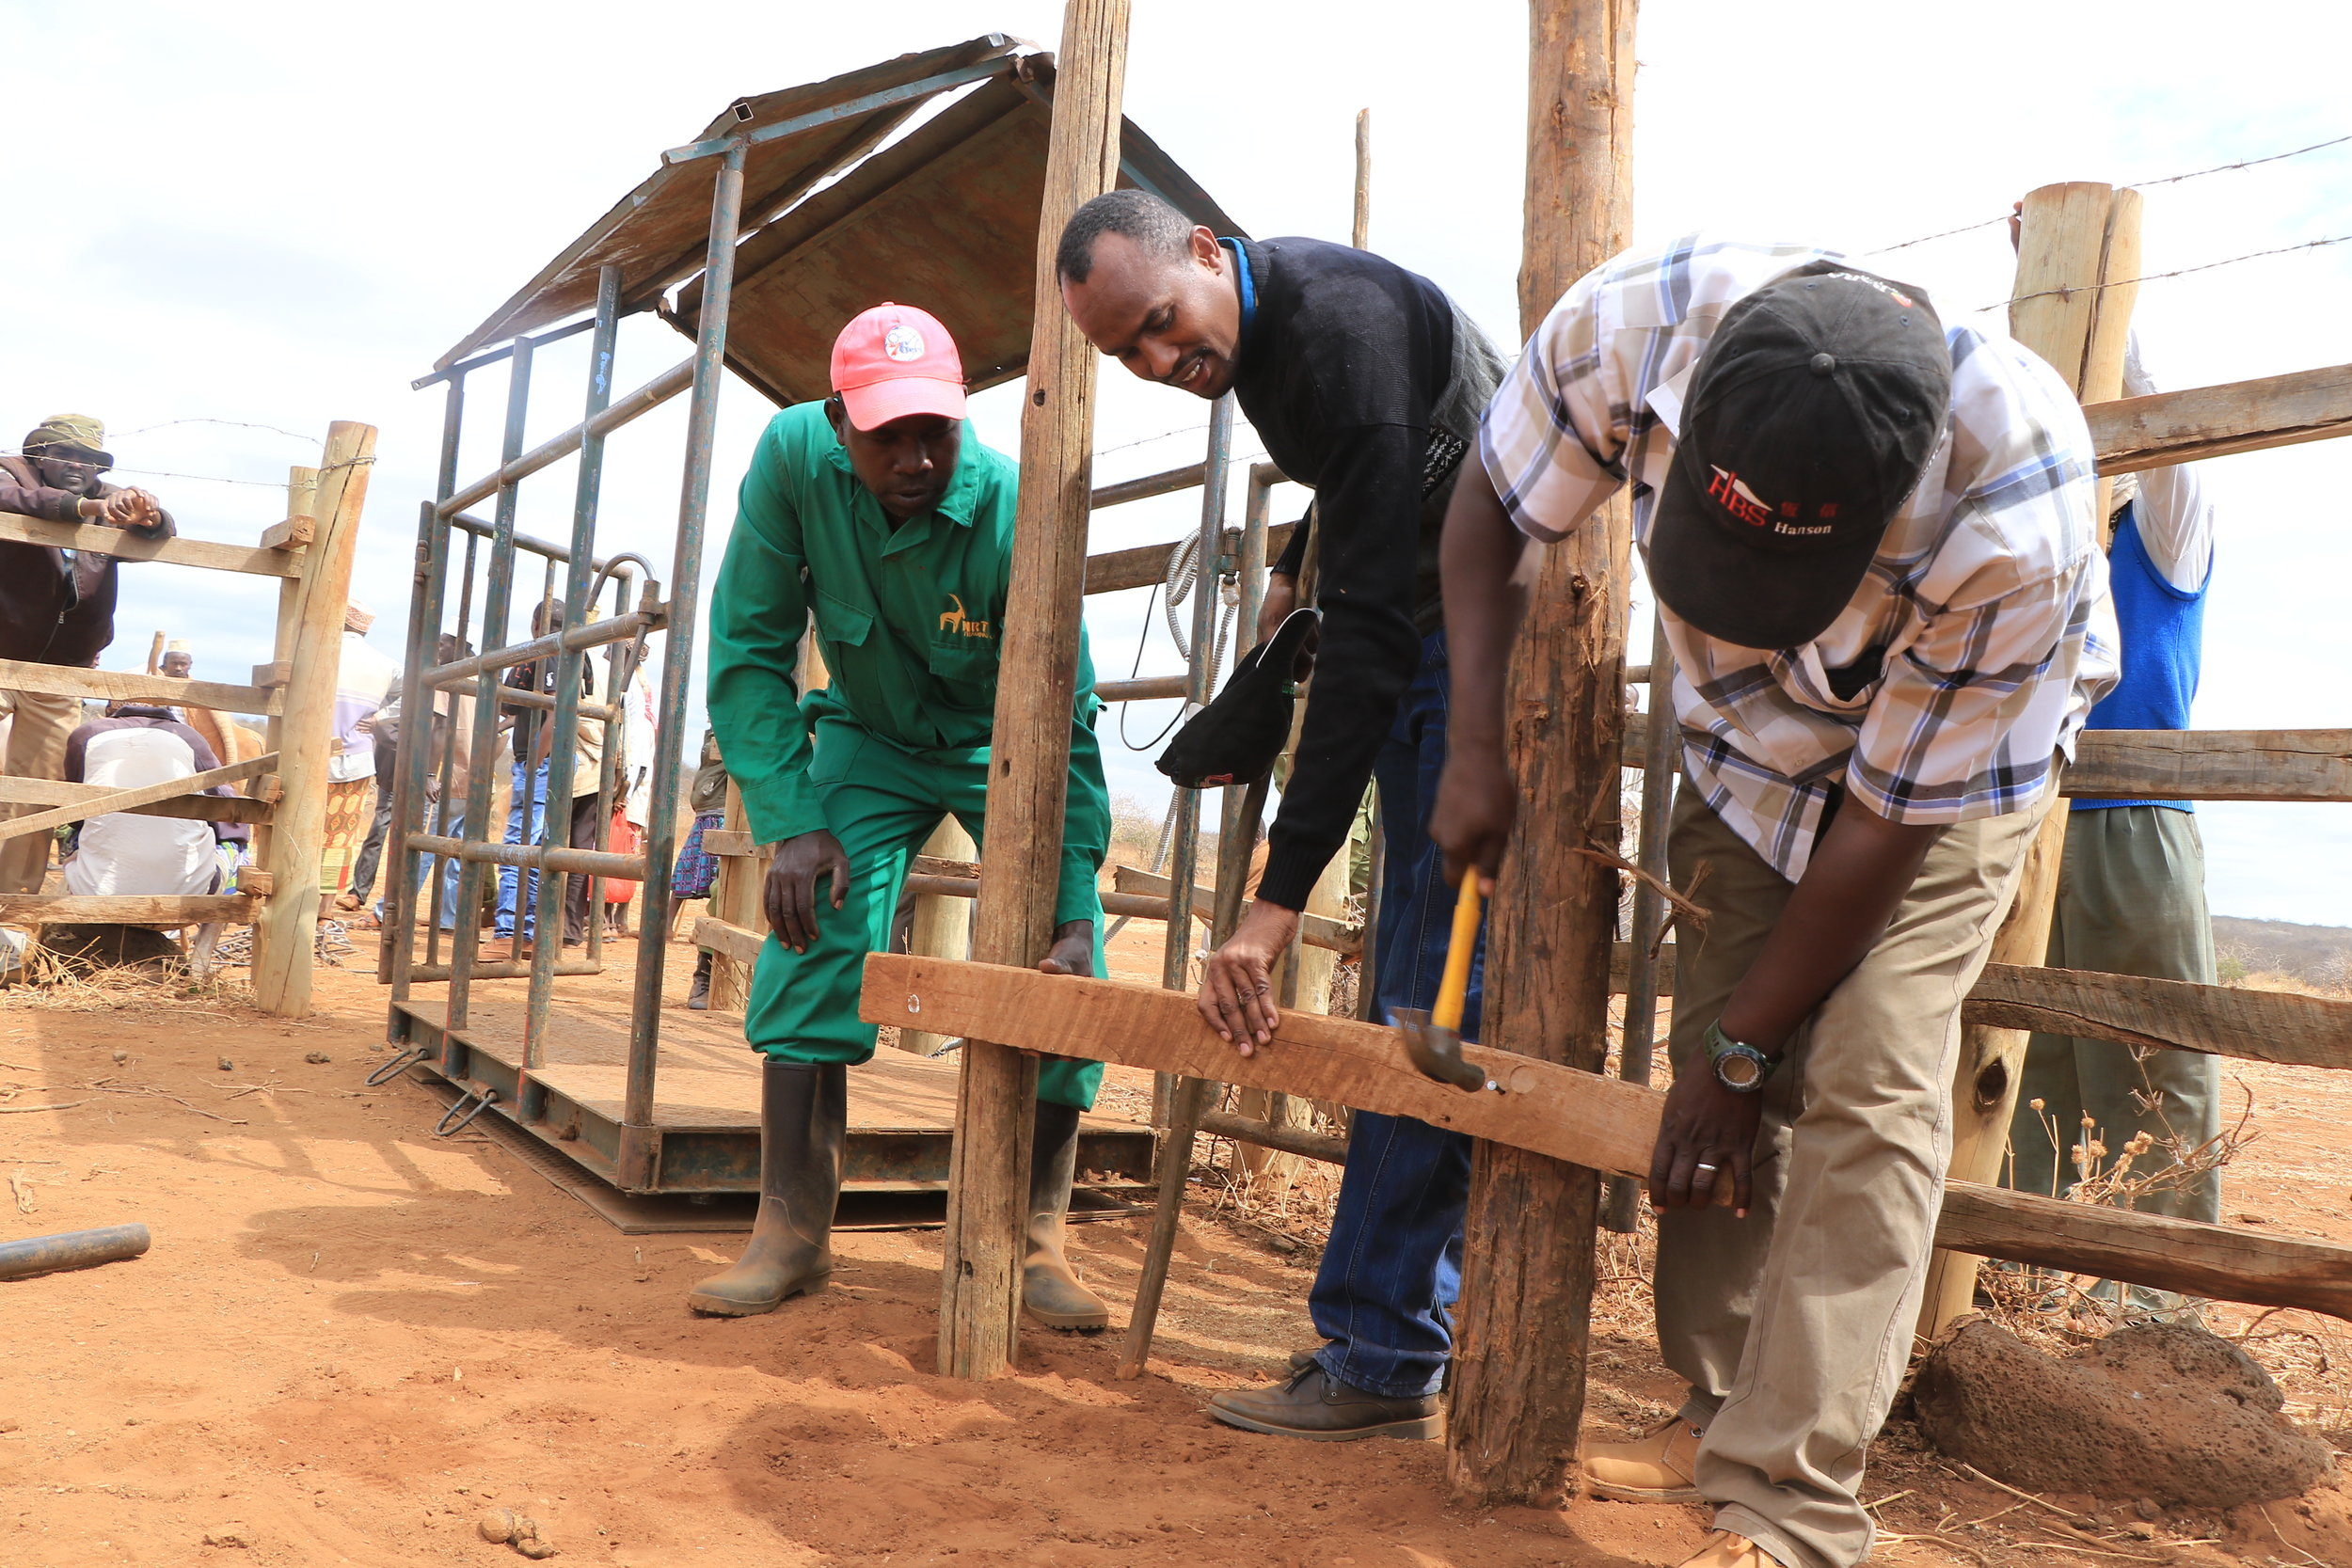 A mobile cattle crush is constructed. The LivestockWORKS team have mobile market infrastructure, including scales, crush and branding equipment. Photo: Duncan Ndotono, NRT.